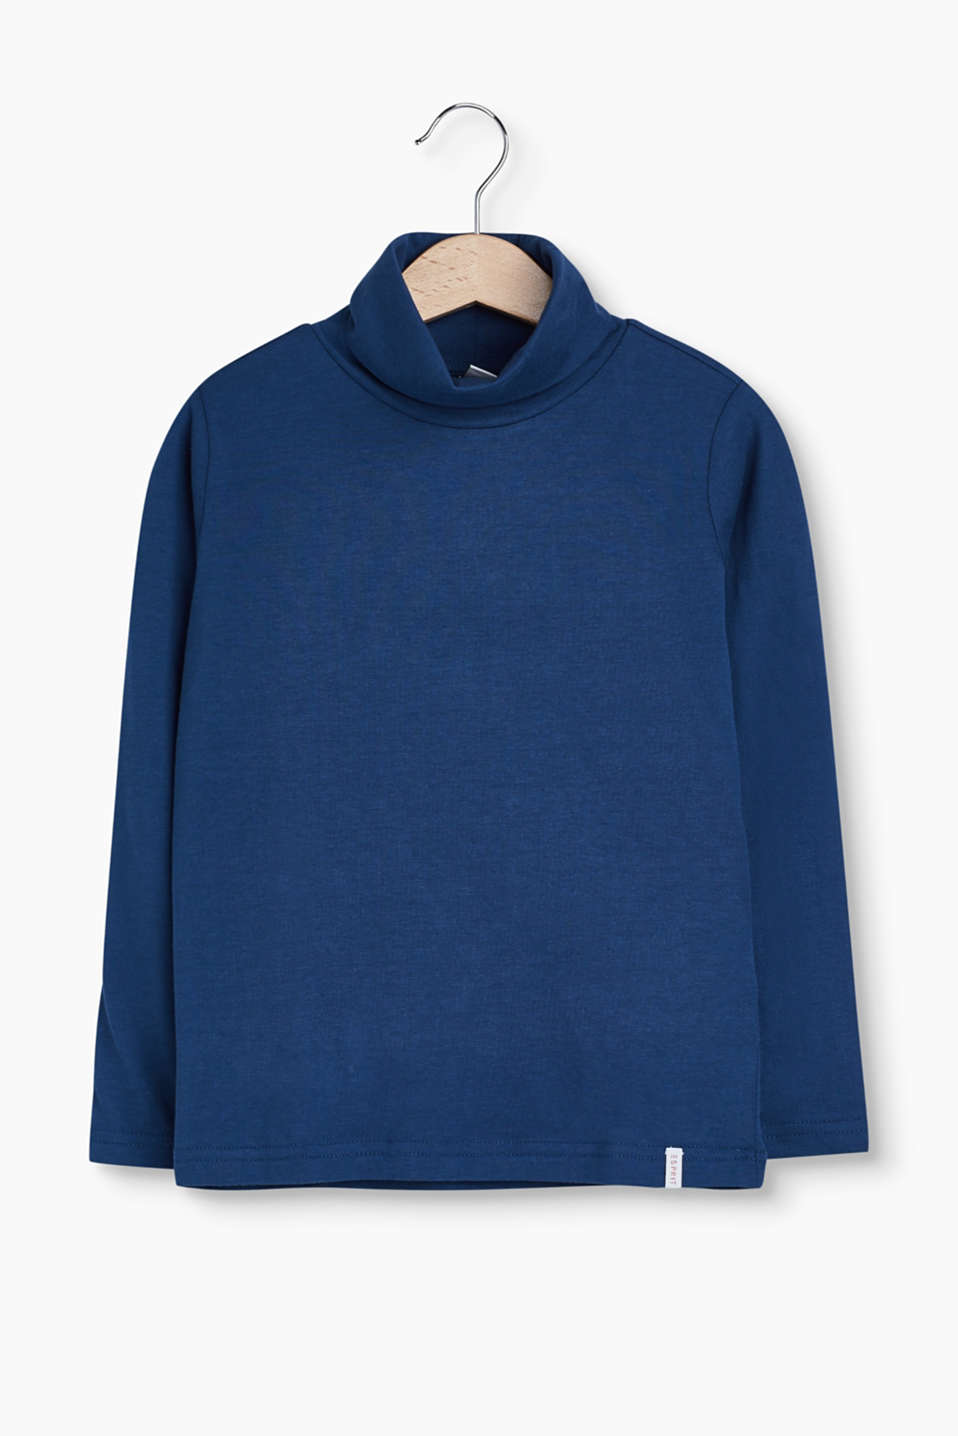 This long sleeve polo neck jumper in soft jersey is a versatile essential piece that is easy to mix and match.